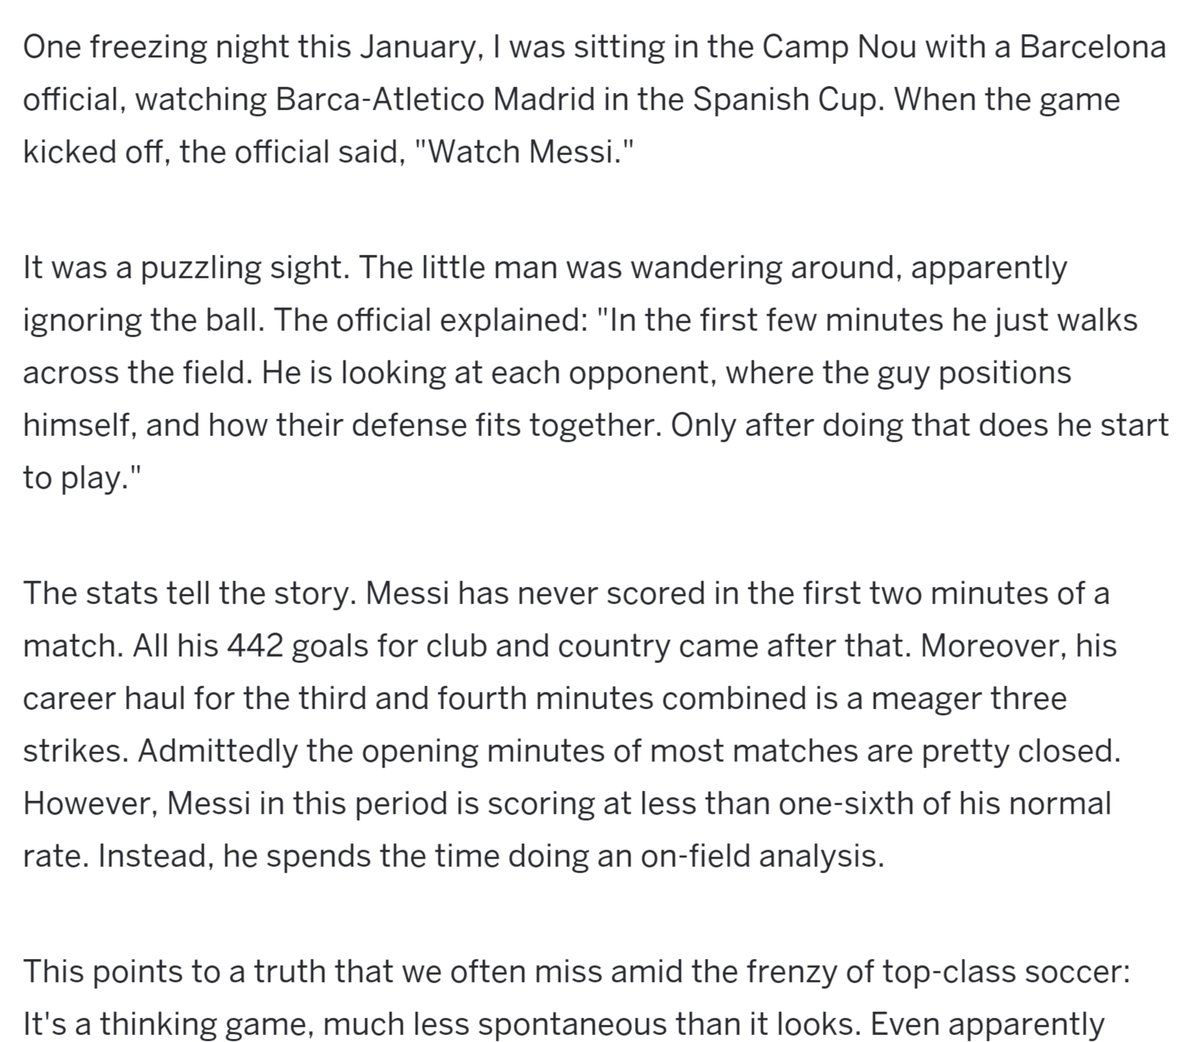 .@KuperSimon on Messi, from last year: https://t.co/jPxctDwU3v